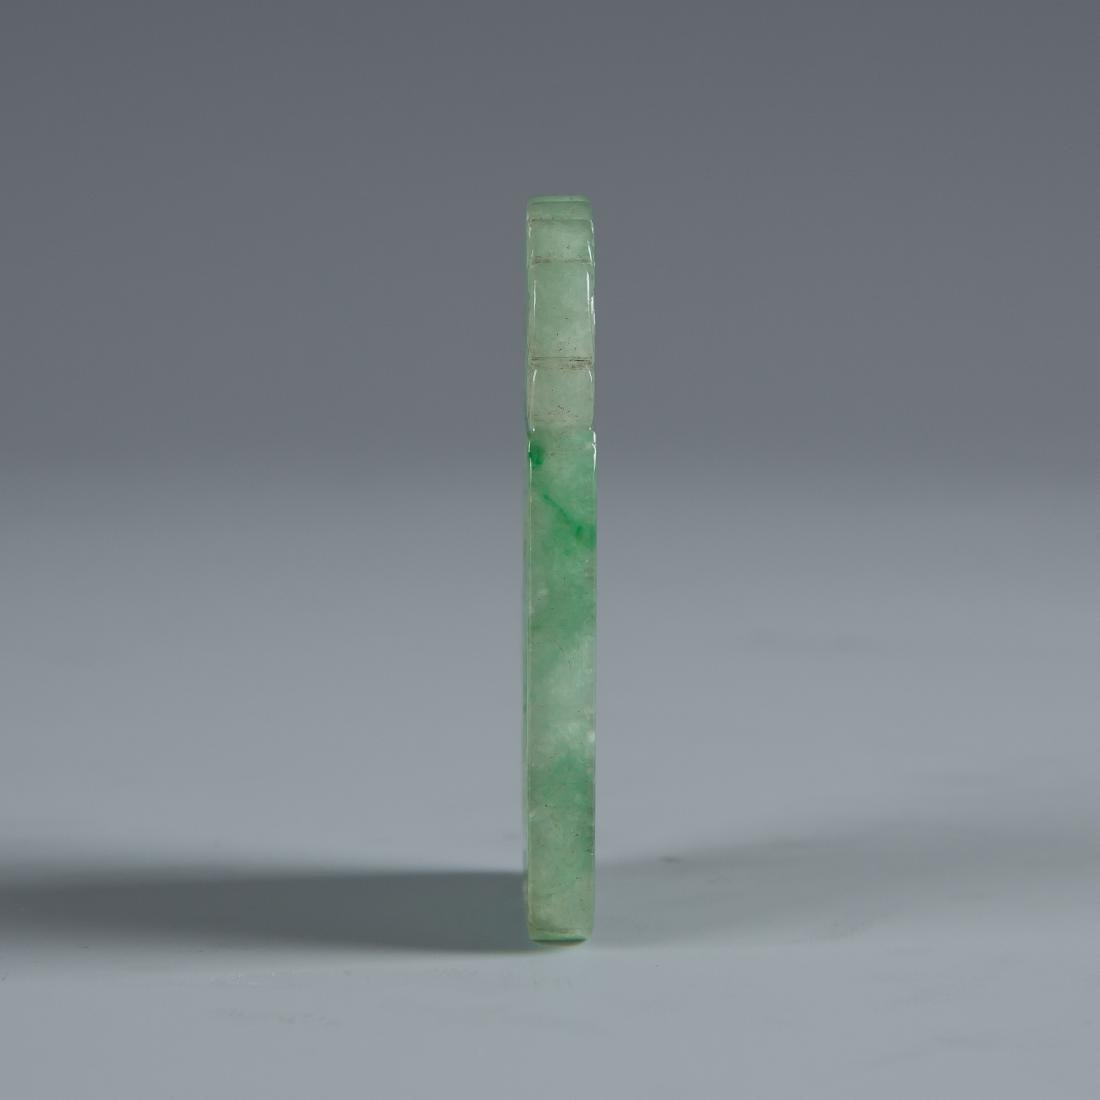 Green Jadeite Pendant With Chinese Characters - 5